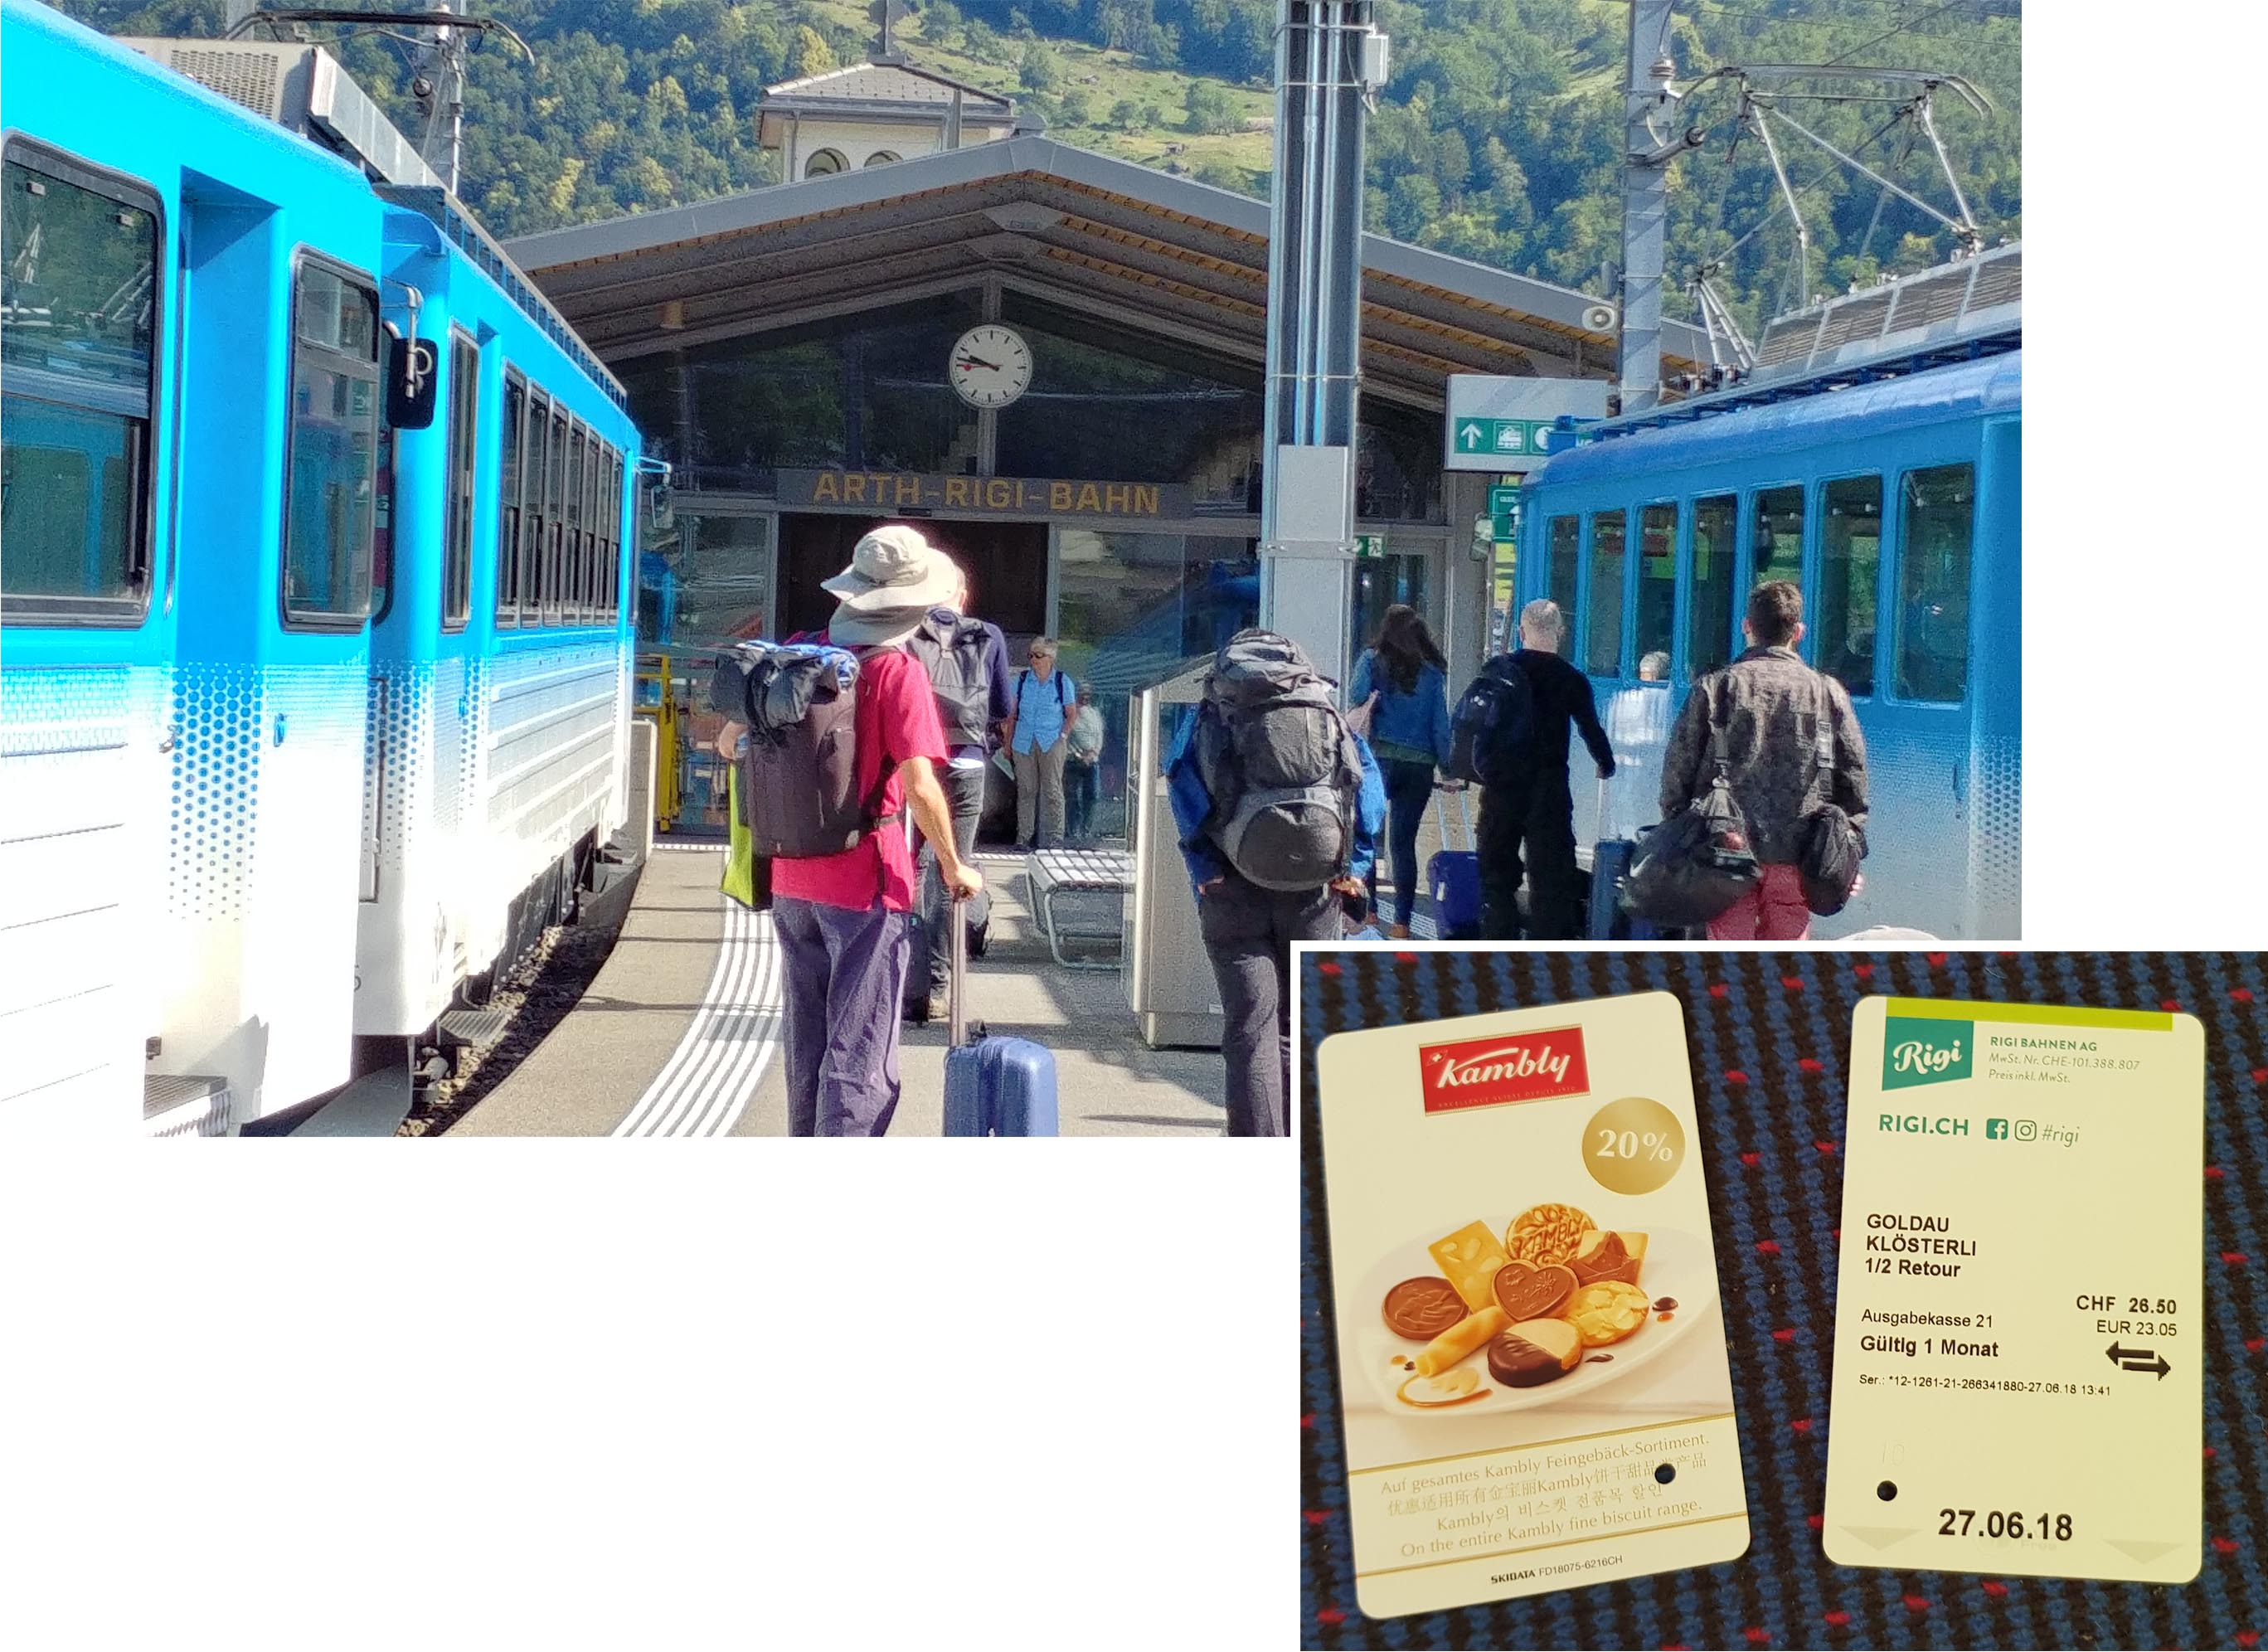 On our way to Rigi Klosteris with return tickets